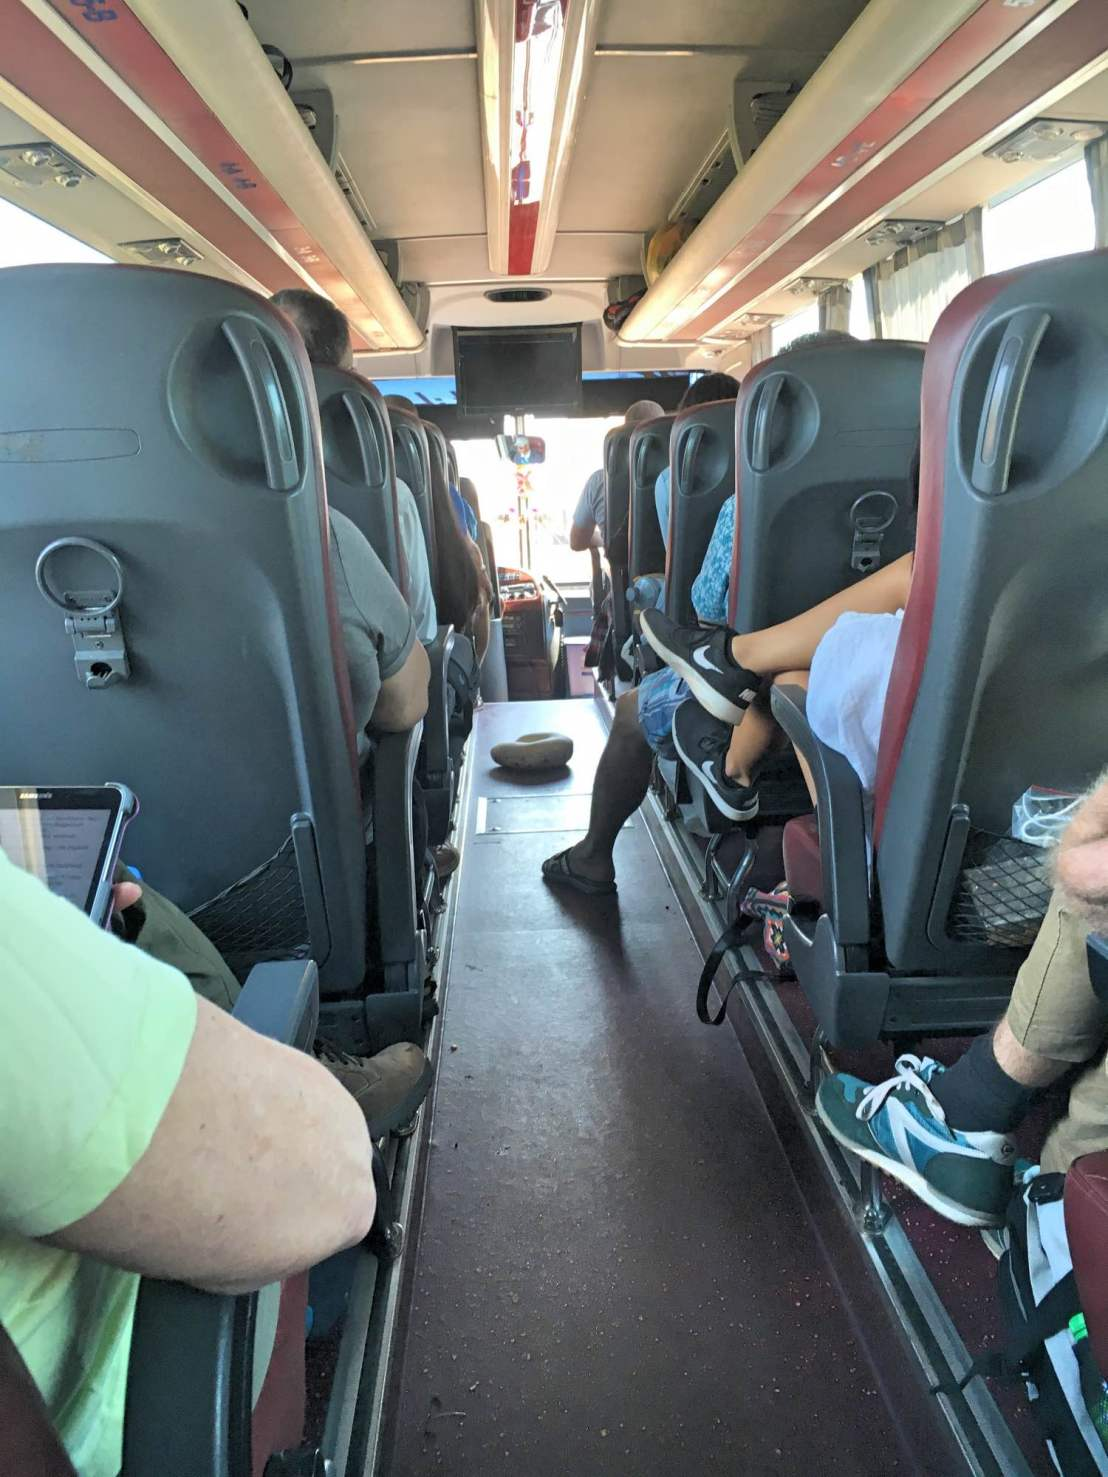 On board the Giant Ibis bus